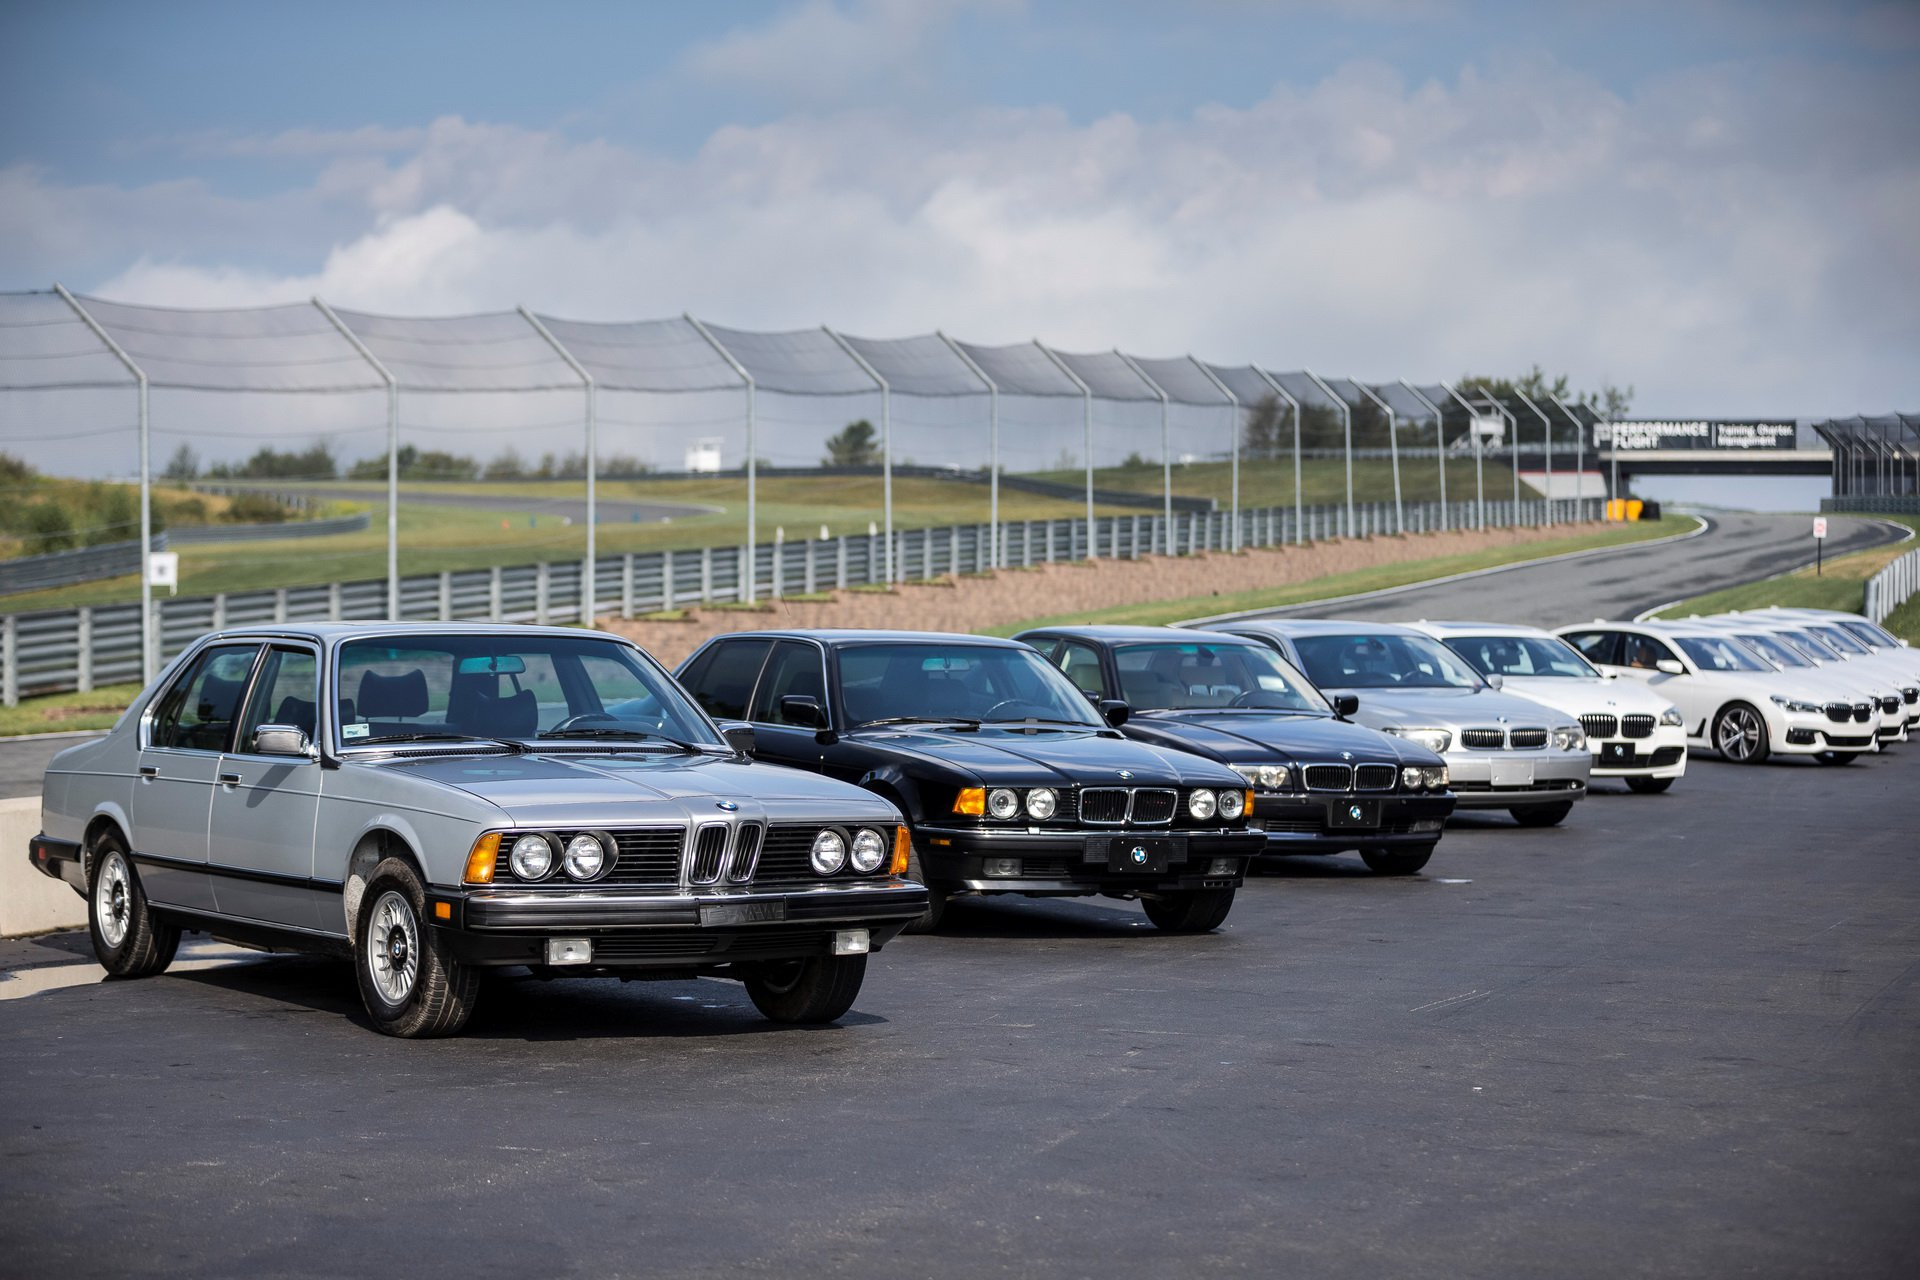 lot-xac-bmw-7-series-0.jpeg